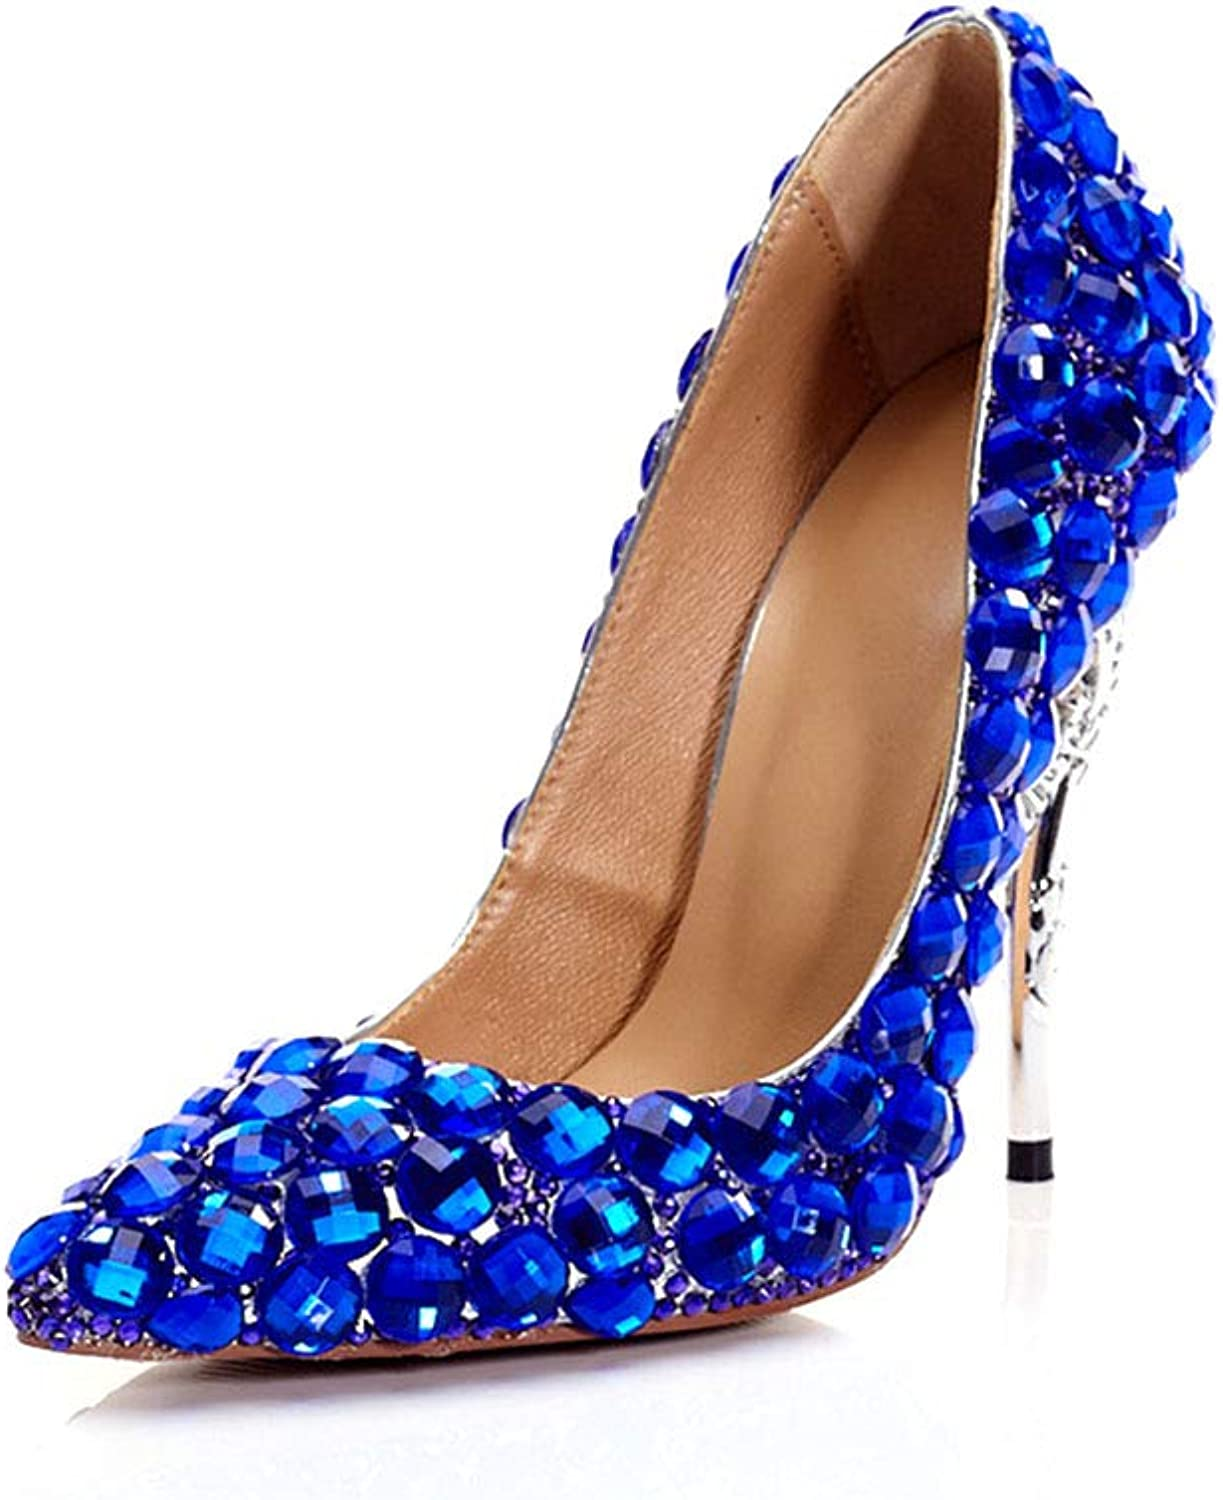 Women's Fashion Single shoes Sapphire bluee Crystal Pointed Stiletto Shallow Mouth Bride Sexy High Heels USA Size